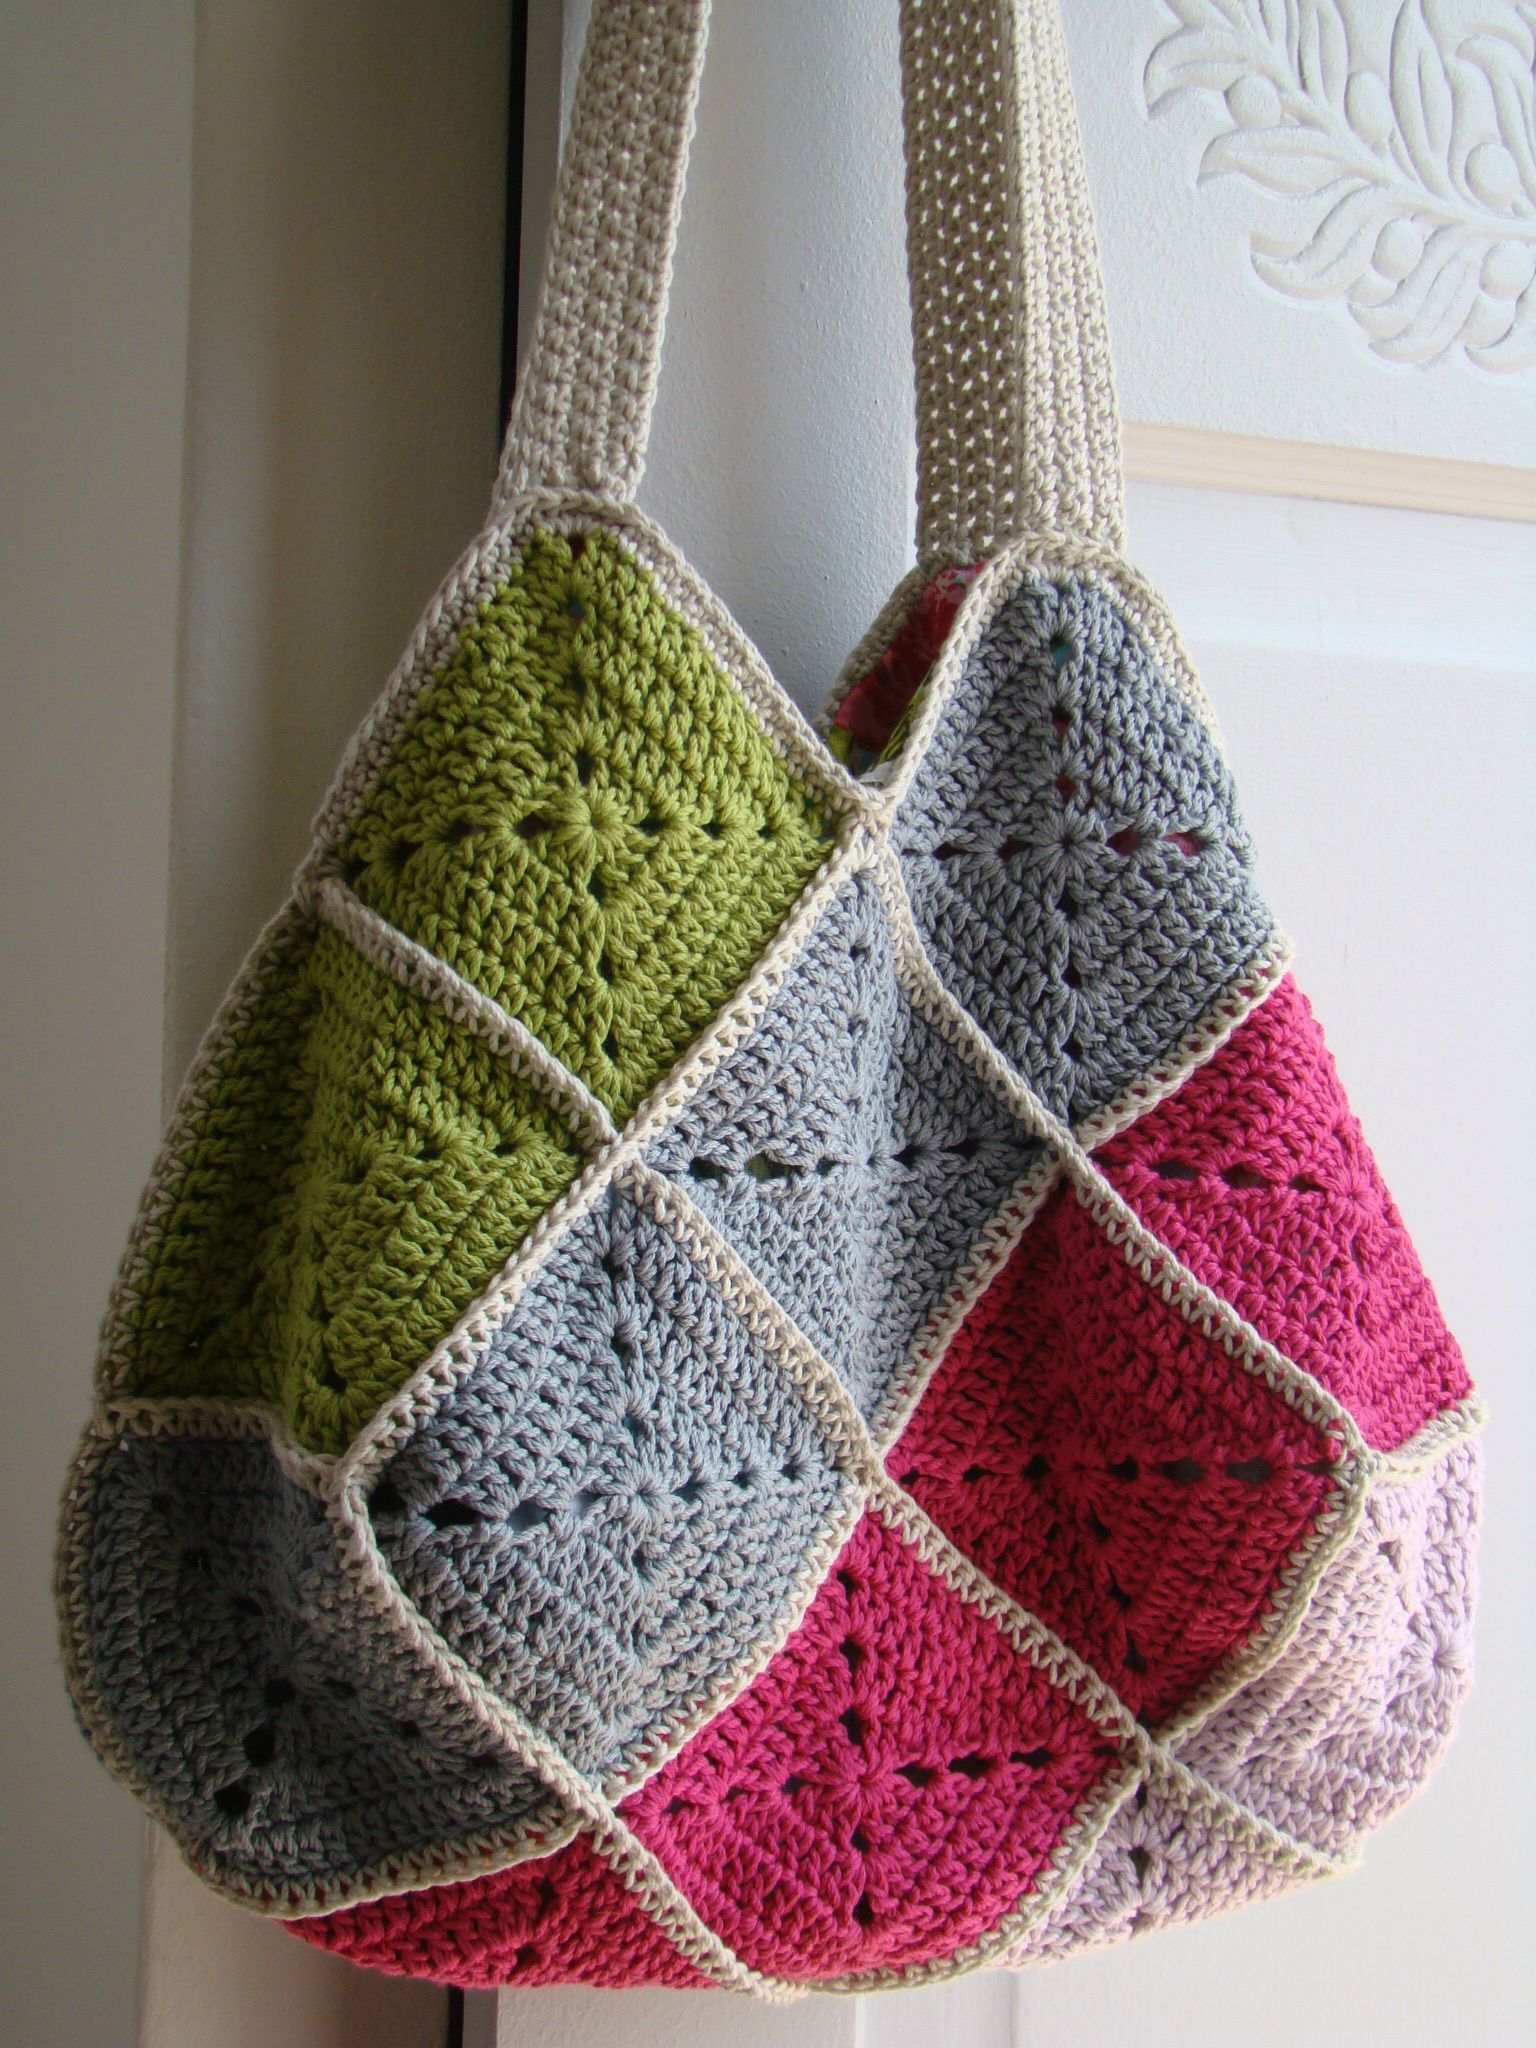 Sac à main au crochet, j\'aime beaucoup! … | sacs crochet | Pinterest ...